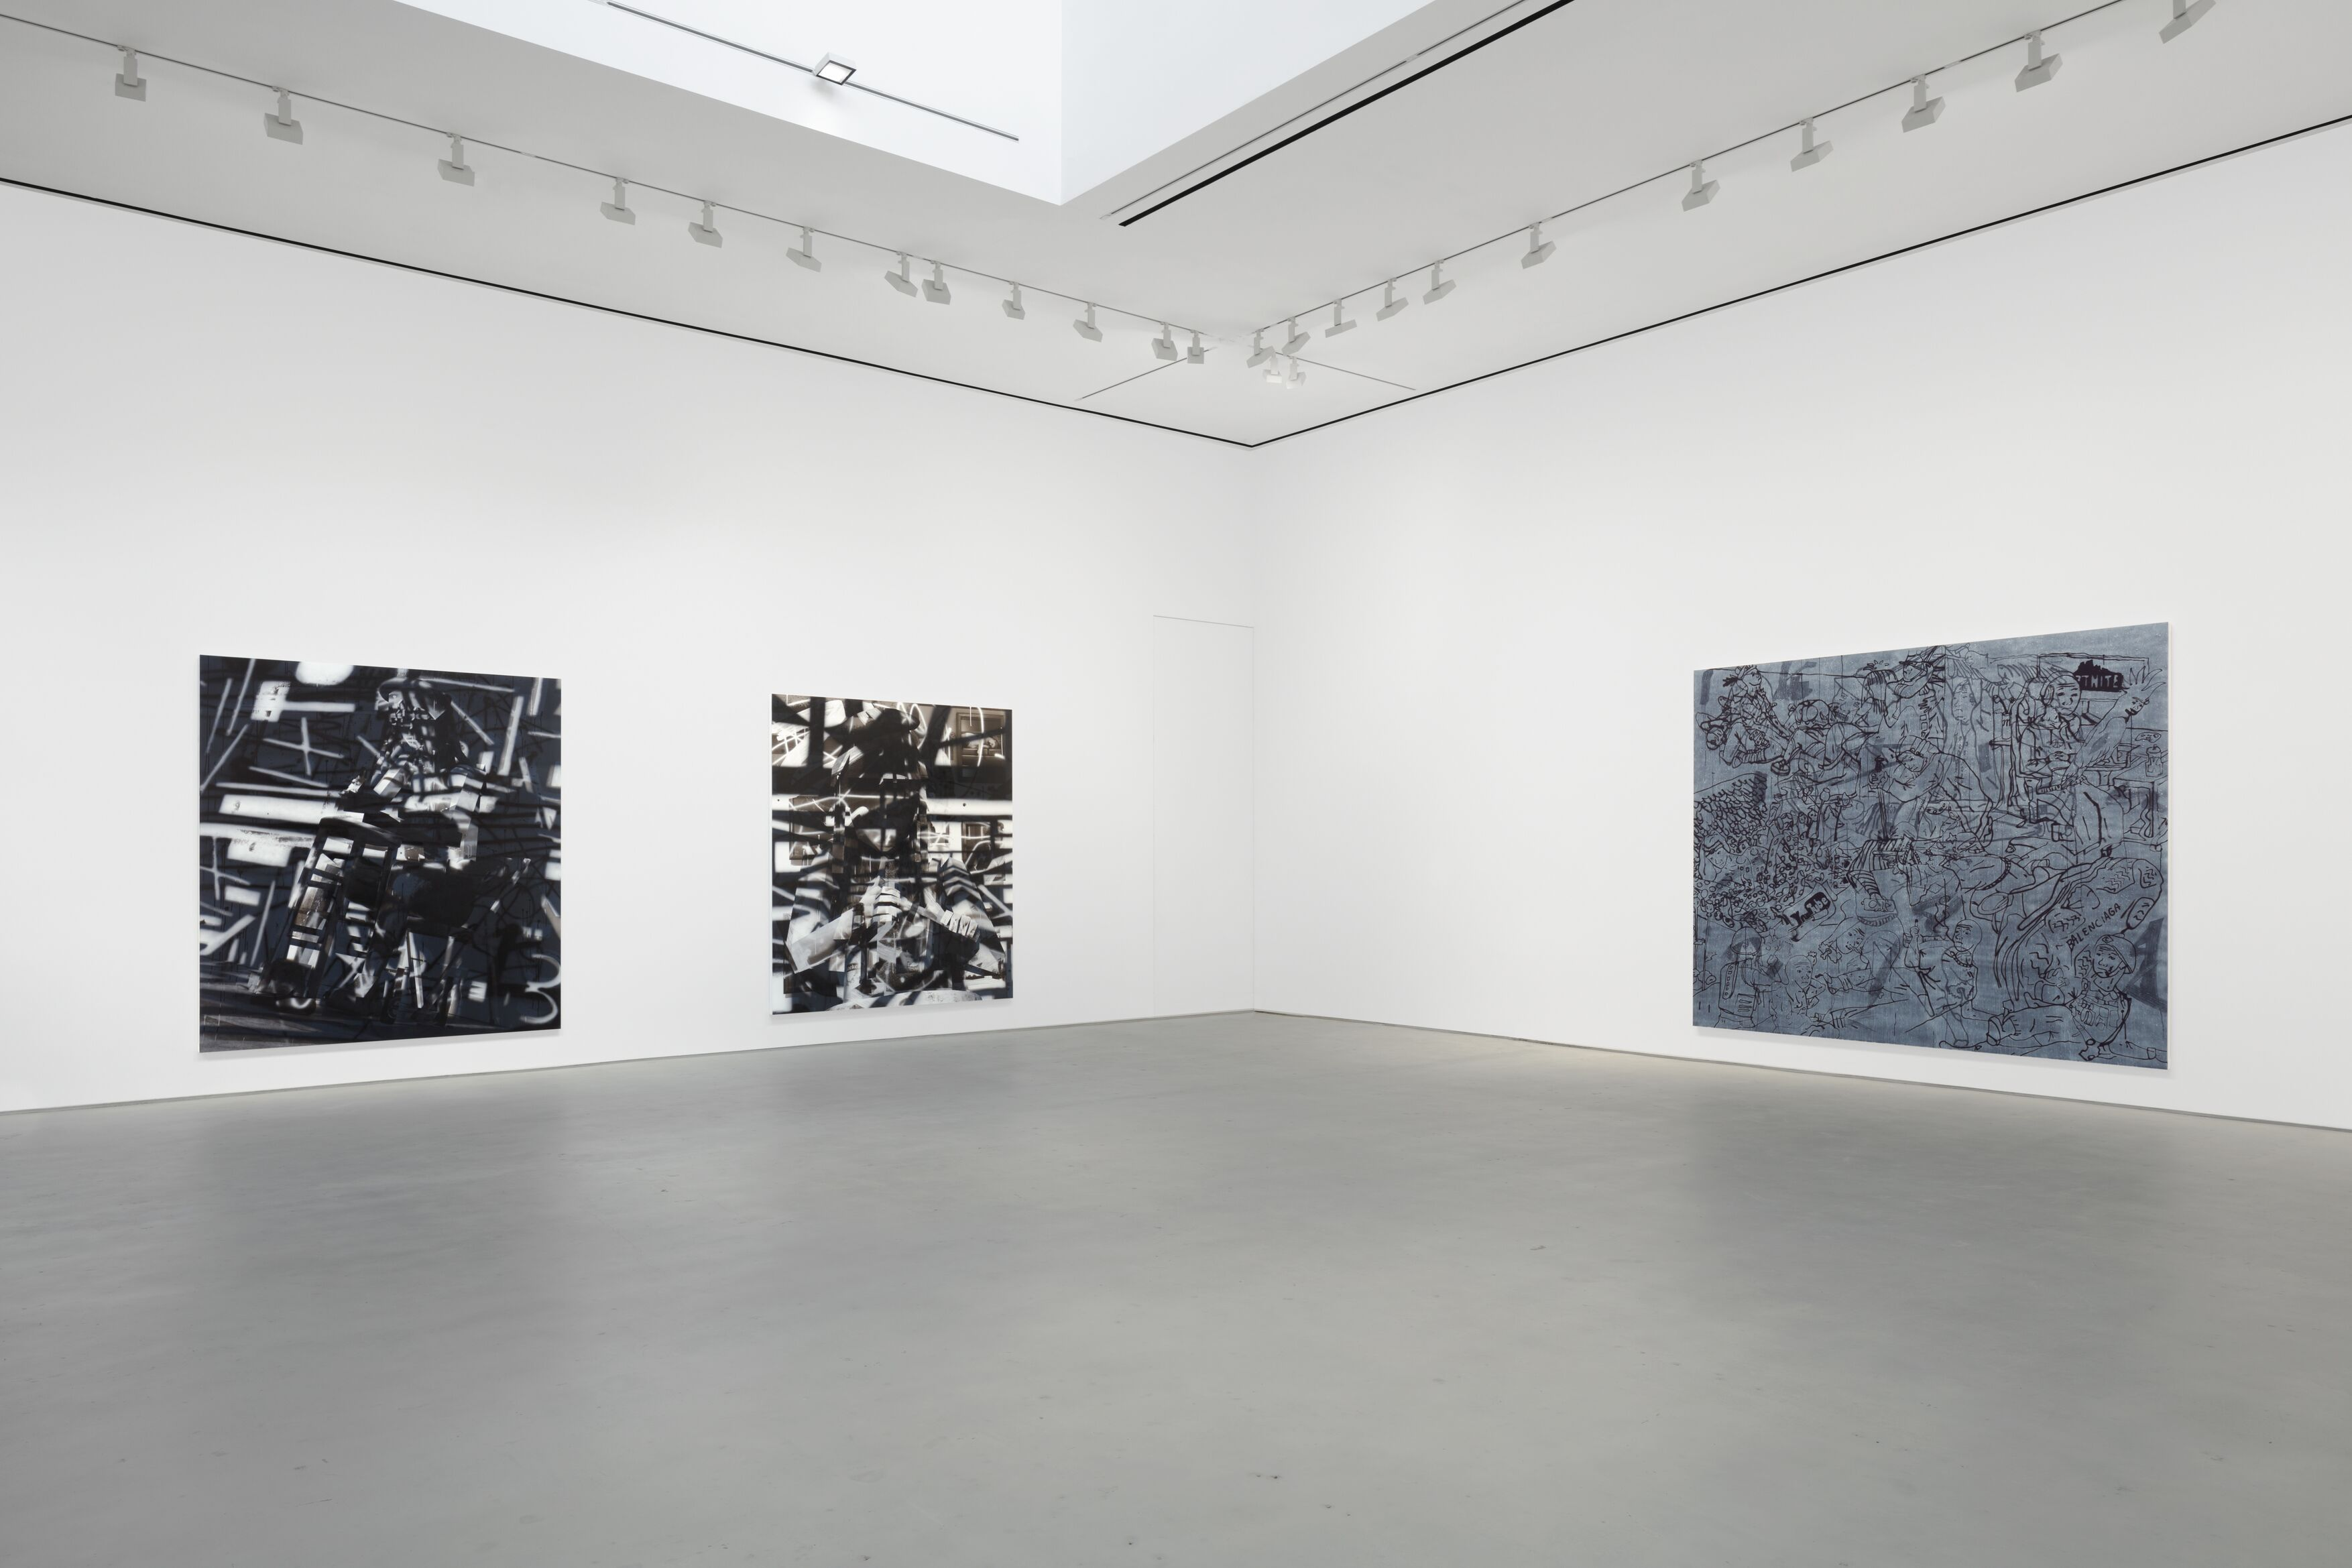 Installation view, 'Avery Singer. Reality Ender,' Hauser & Wirth New York, 22nd Street, 2021. Picturing: 'Studio,' 2019, Solomon R. Guggenheim Museum, Purchased with funds contributed by Richard Weinberg, 2020; 'Sculptor,' 2021; 'Wojack Battle Scene,' 2021, © Avery Singer, courtesy the artist, Hauser & Wirth, and Kraupa-Tuskany Zeidler, Berlin Photo: Lance Brewer